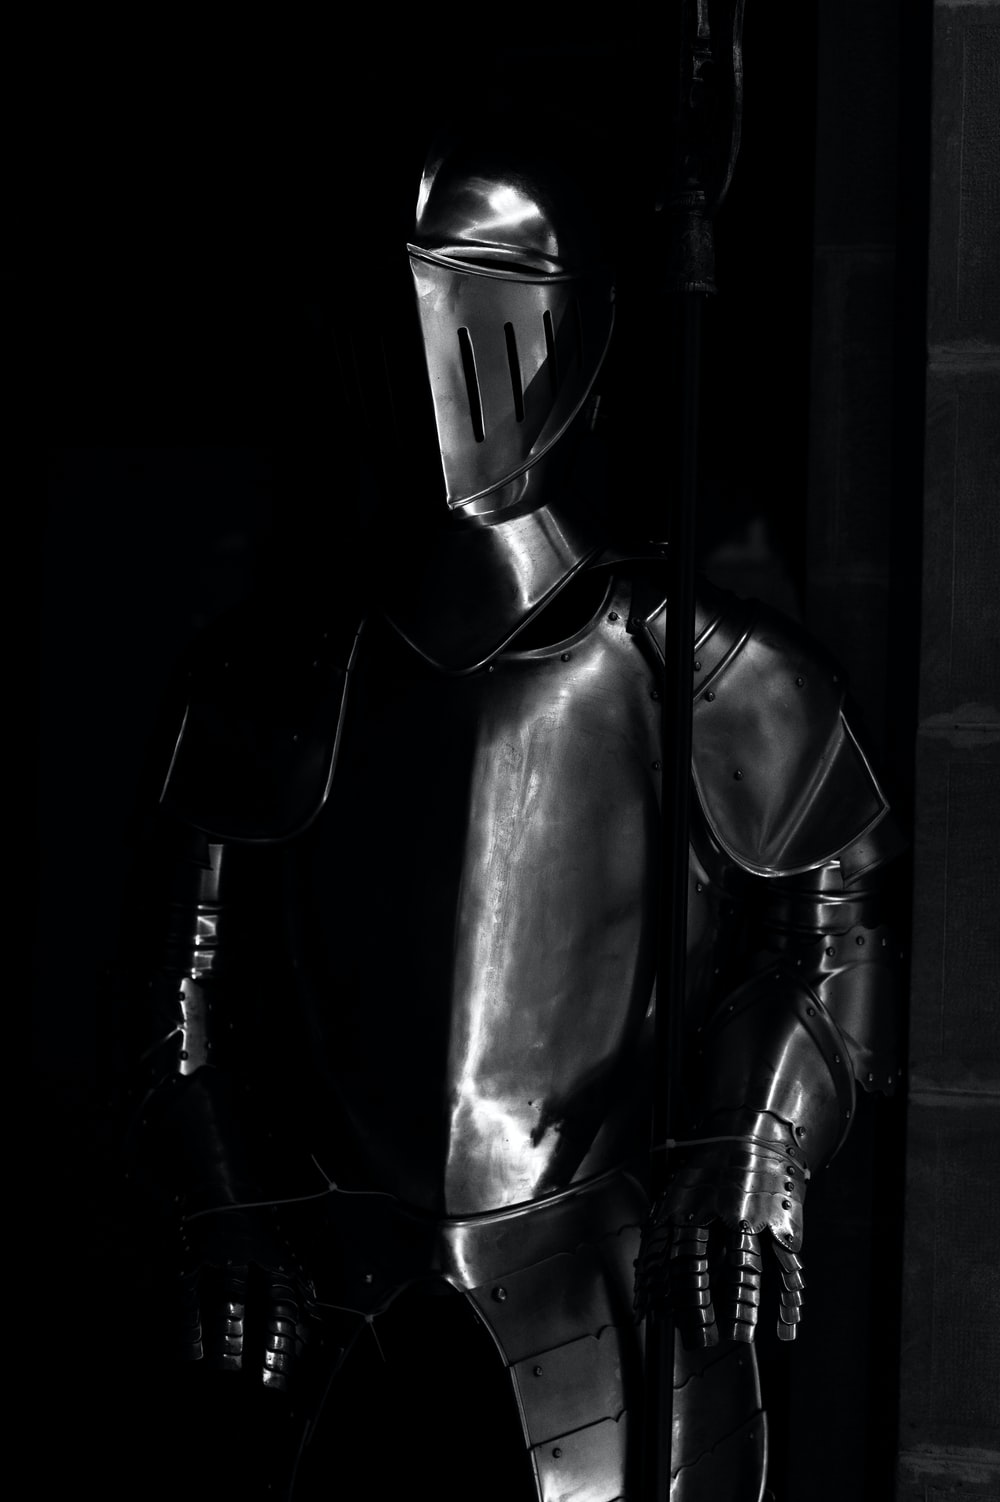 grayscale photography of armor